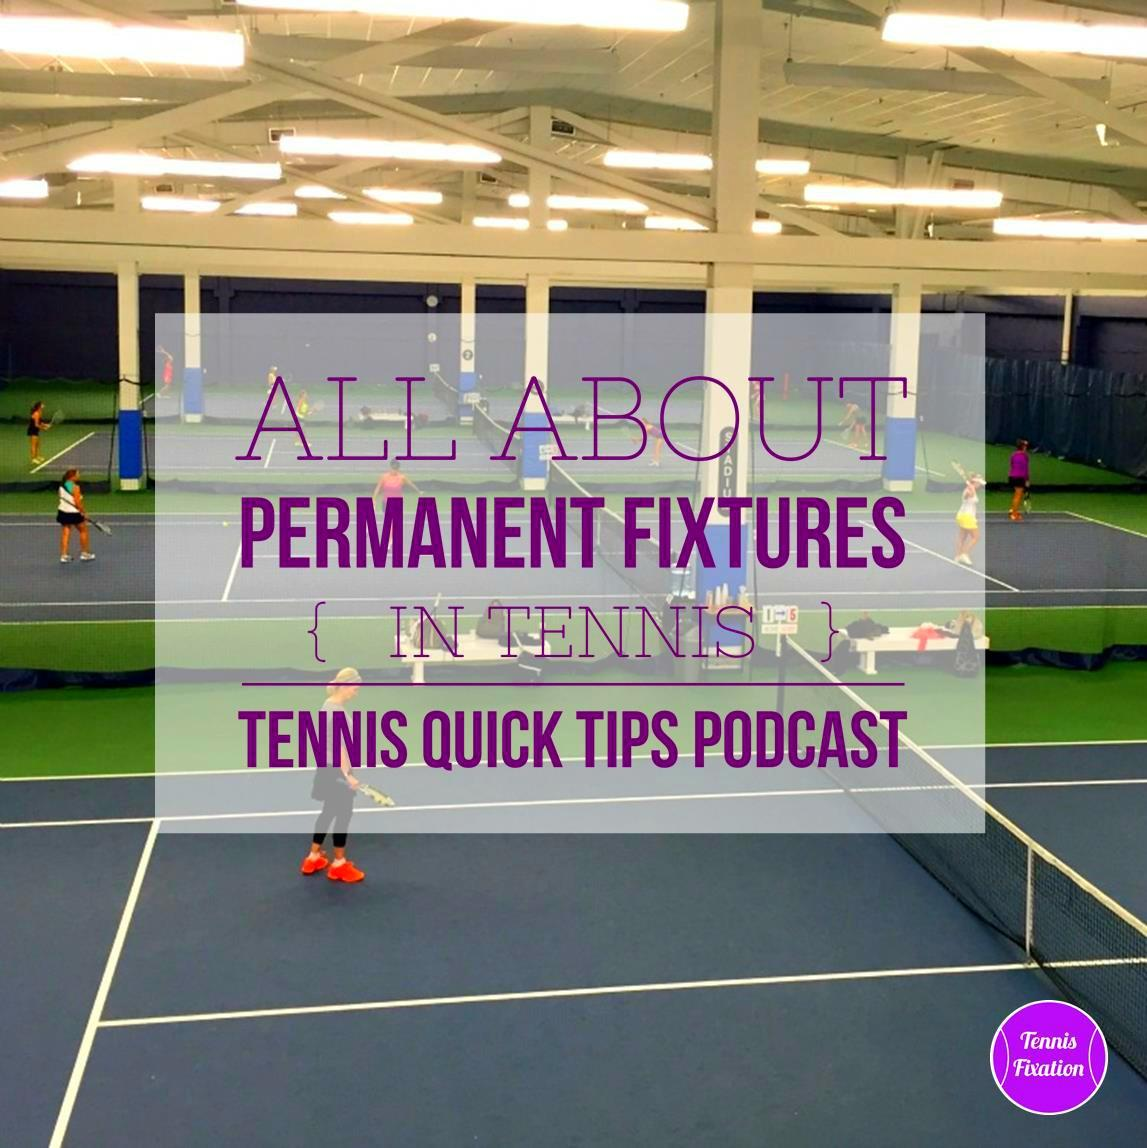 All About Permanent Fixtures In Tennis Tennis Quick Tips